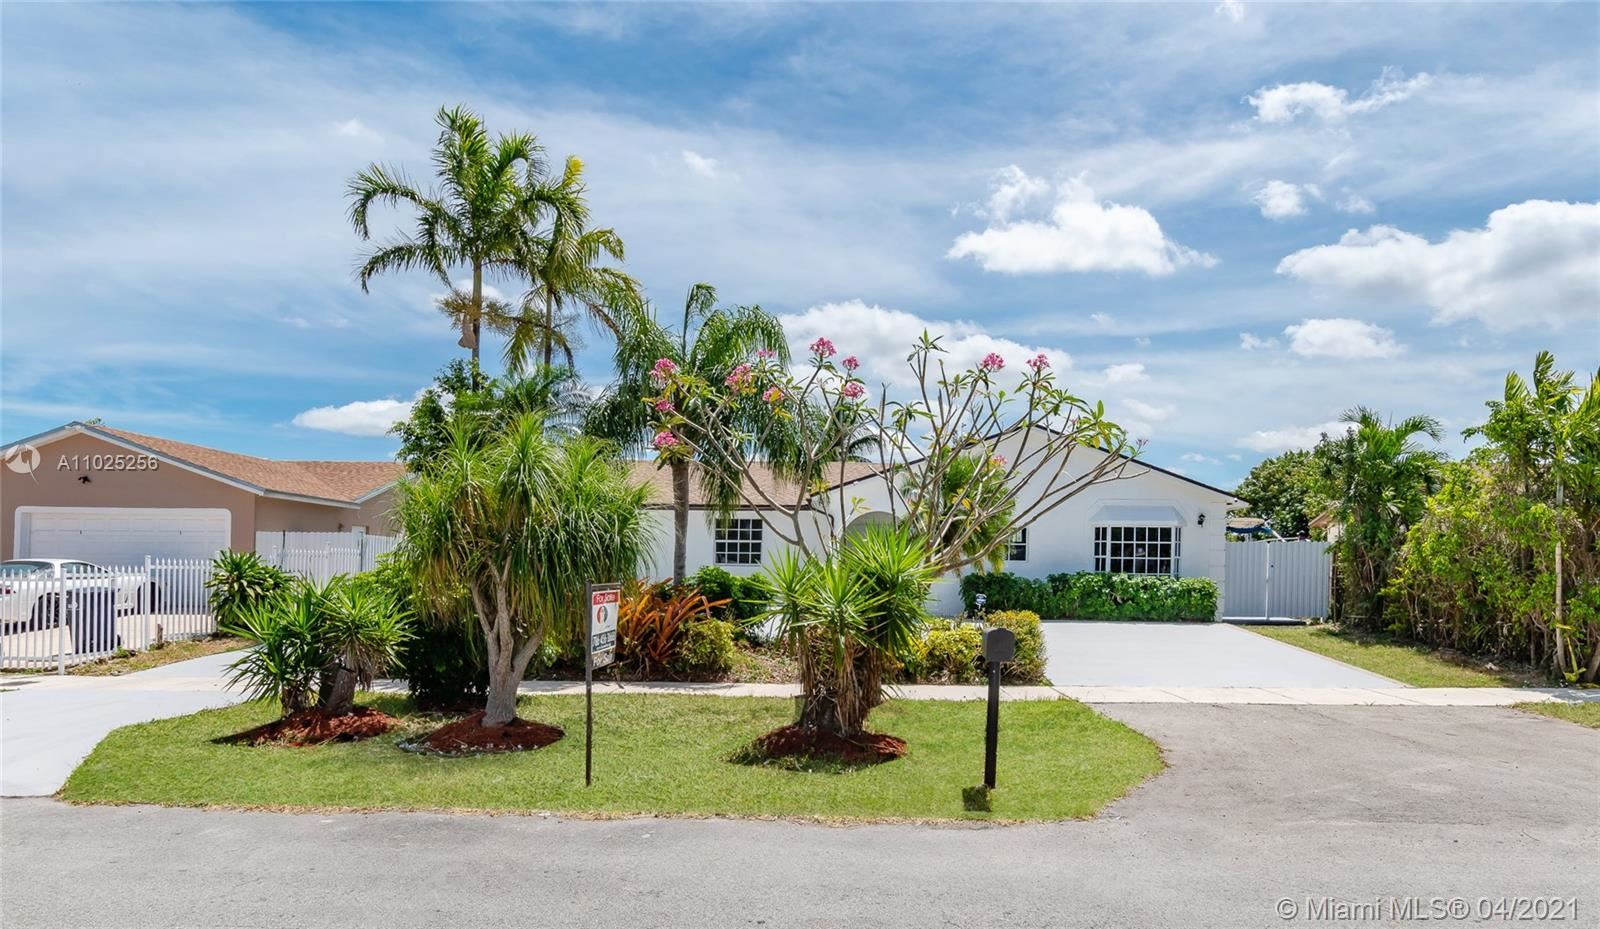 13210 SW 264th St, Homestead, FL 33032 - #: A11025256